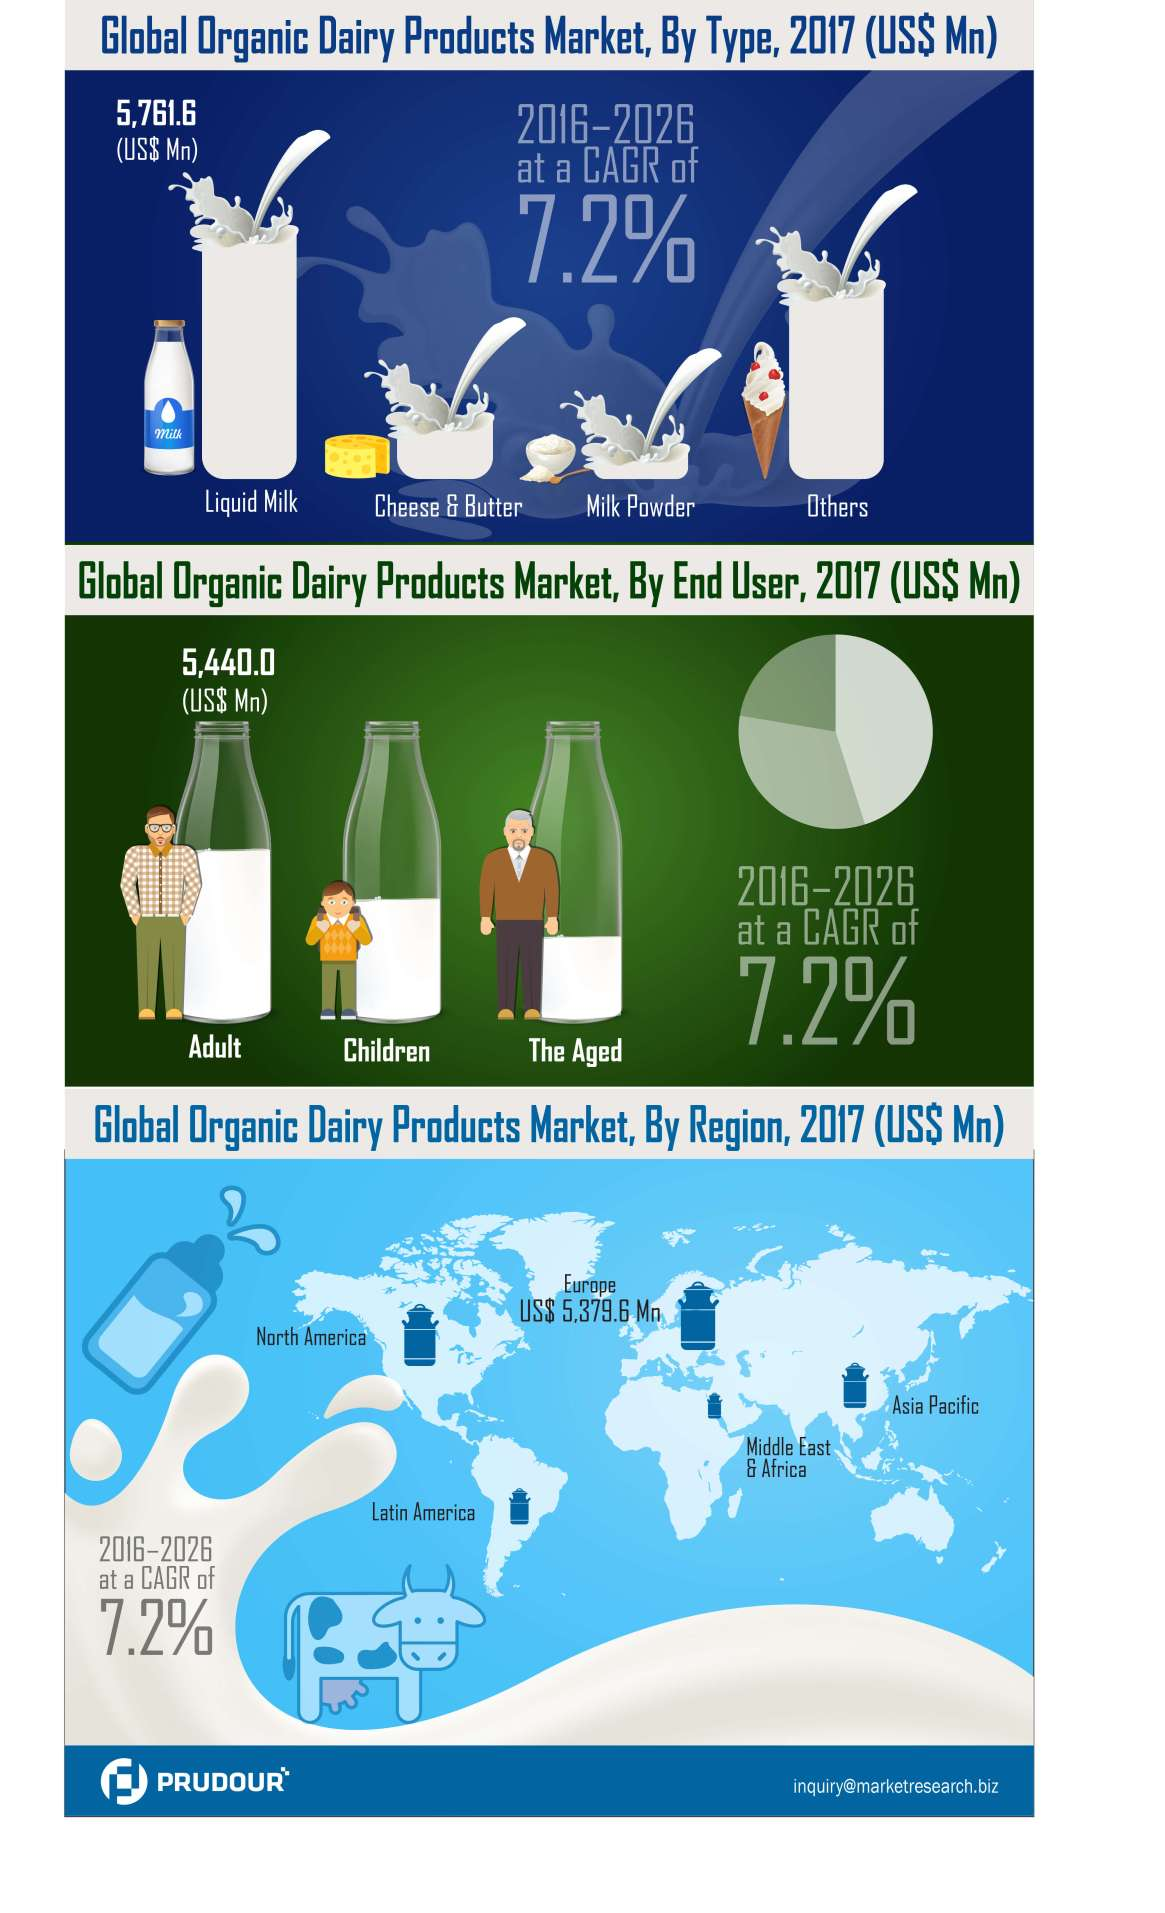 Organic Dairy Products Market Witnessed CAGR of Over 7.2% During 2017-2026